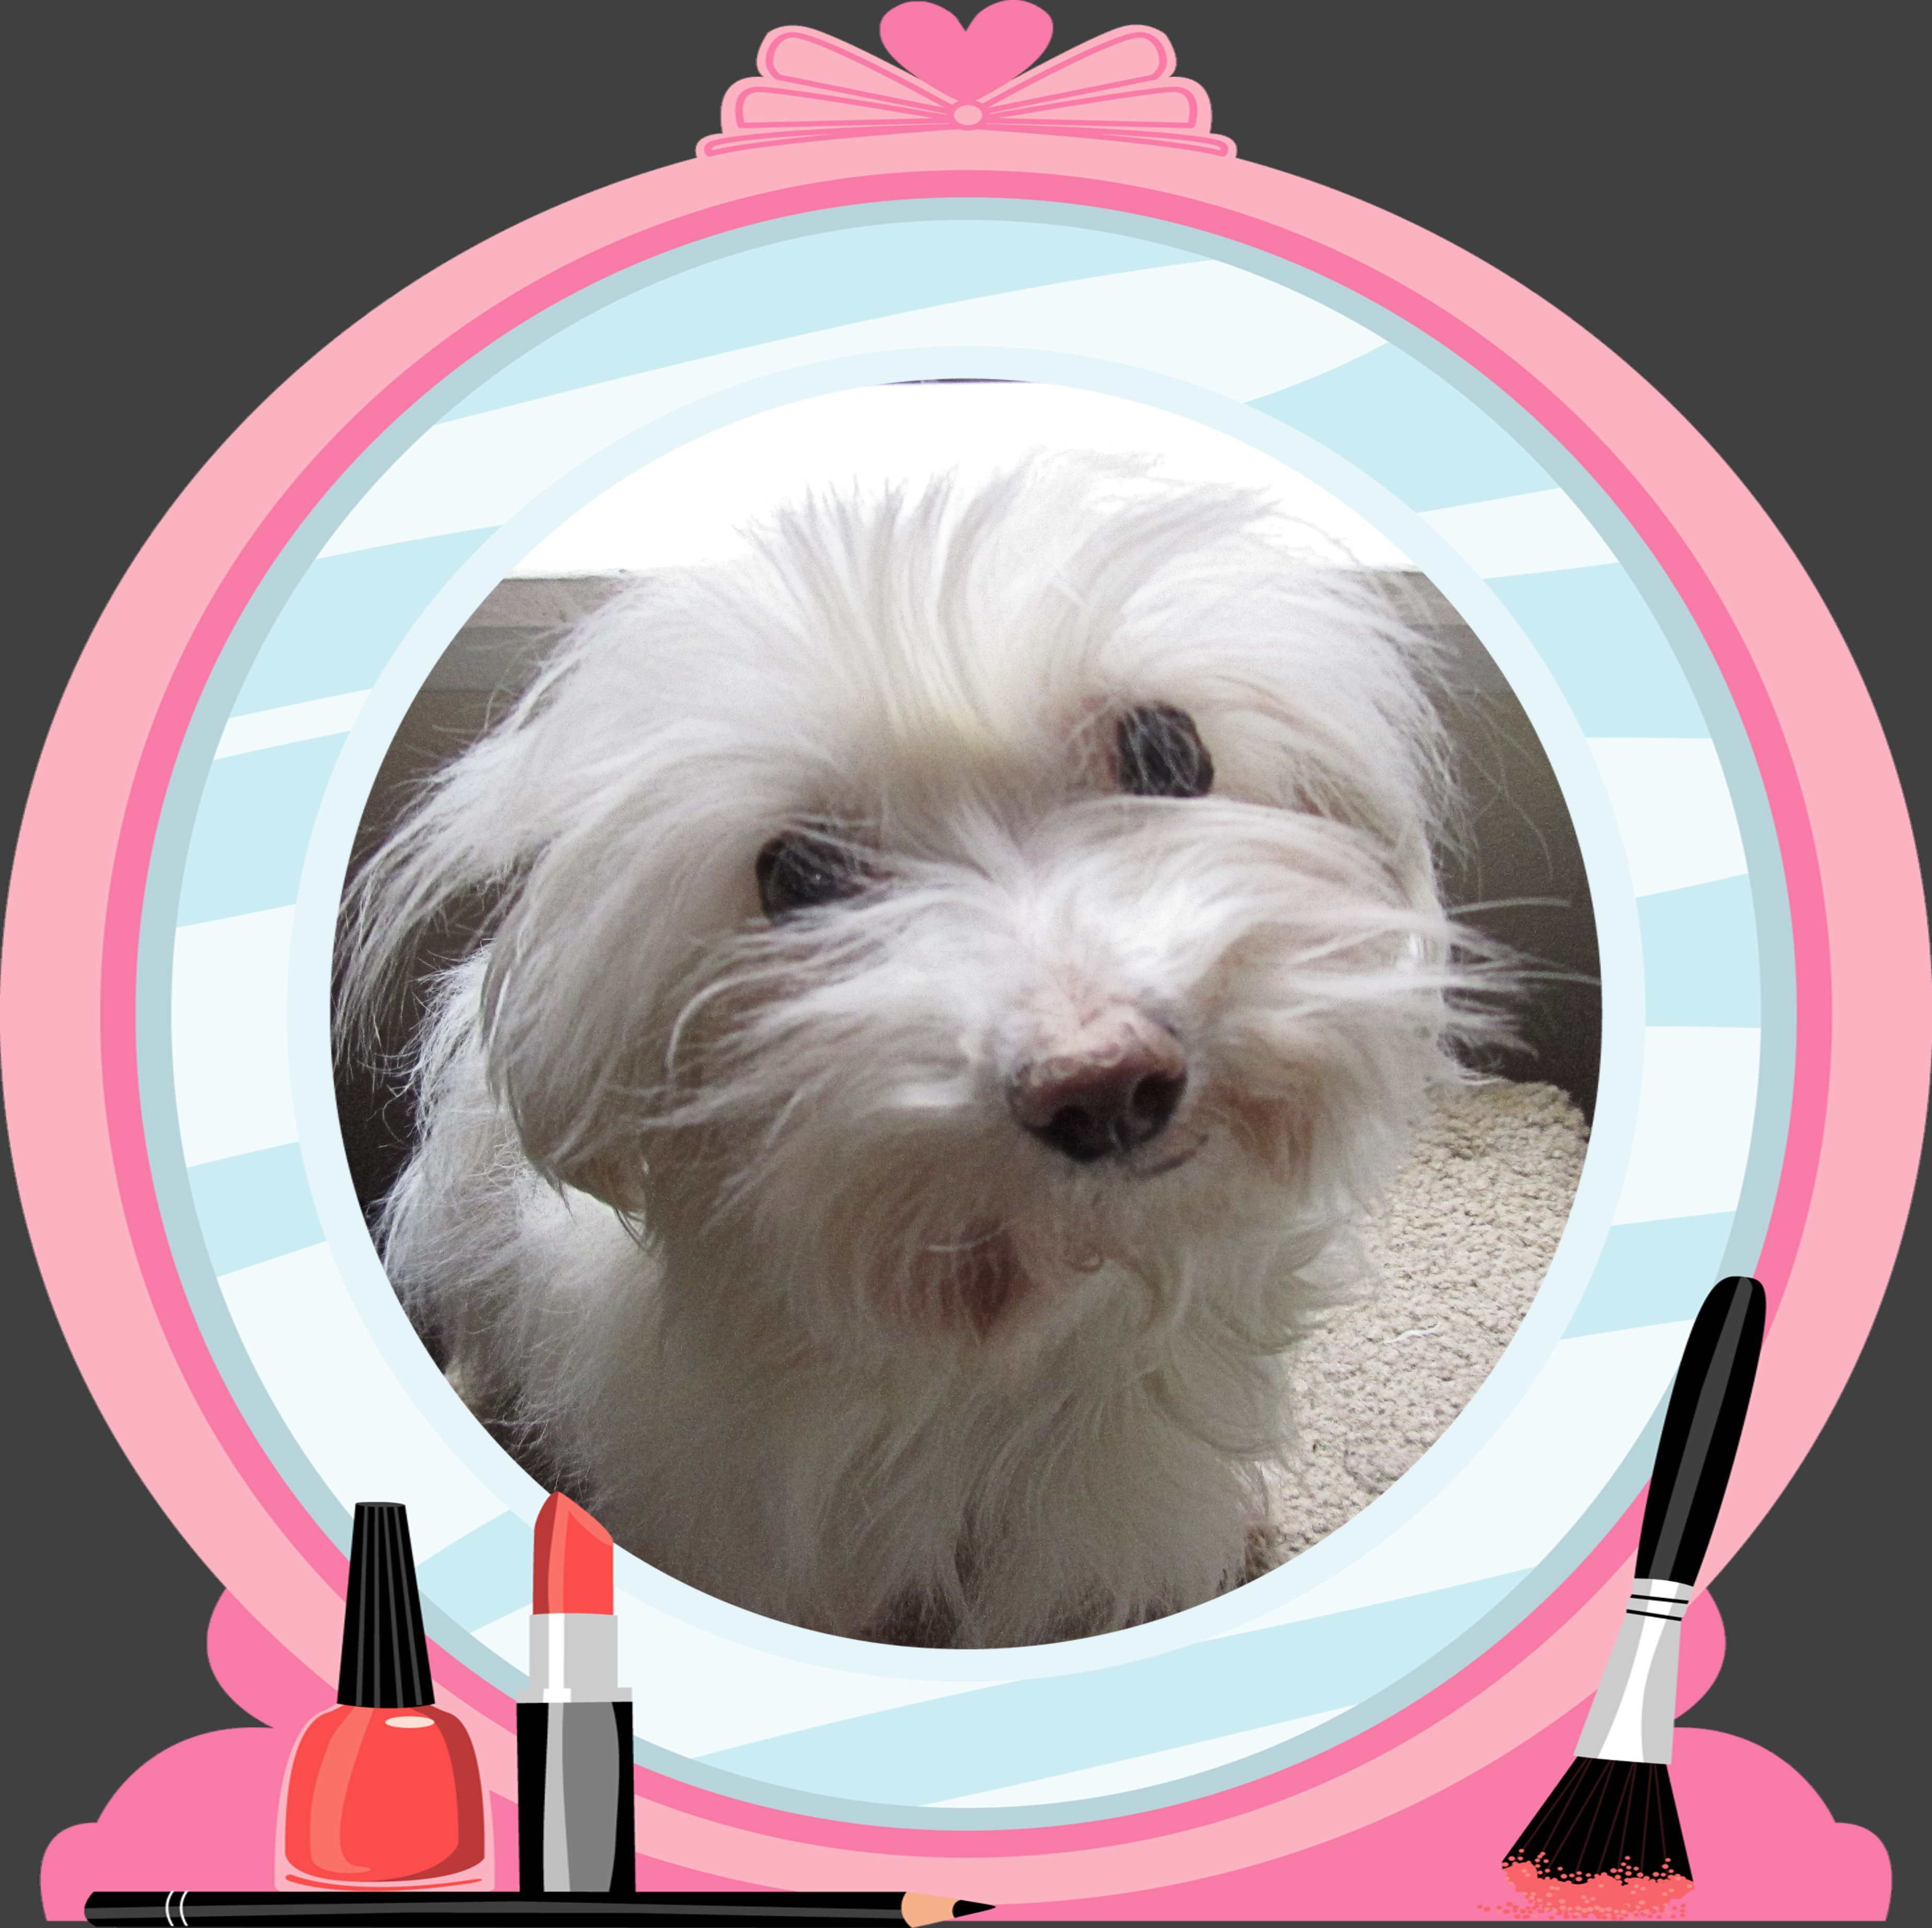 Adopt Little Lulu From K9kastle Petfinder Org A Tiny Maltese Out